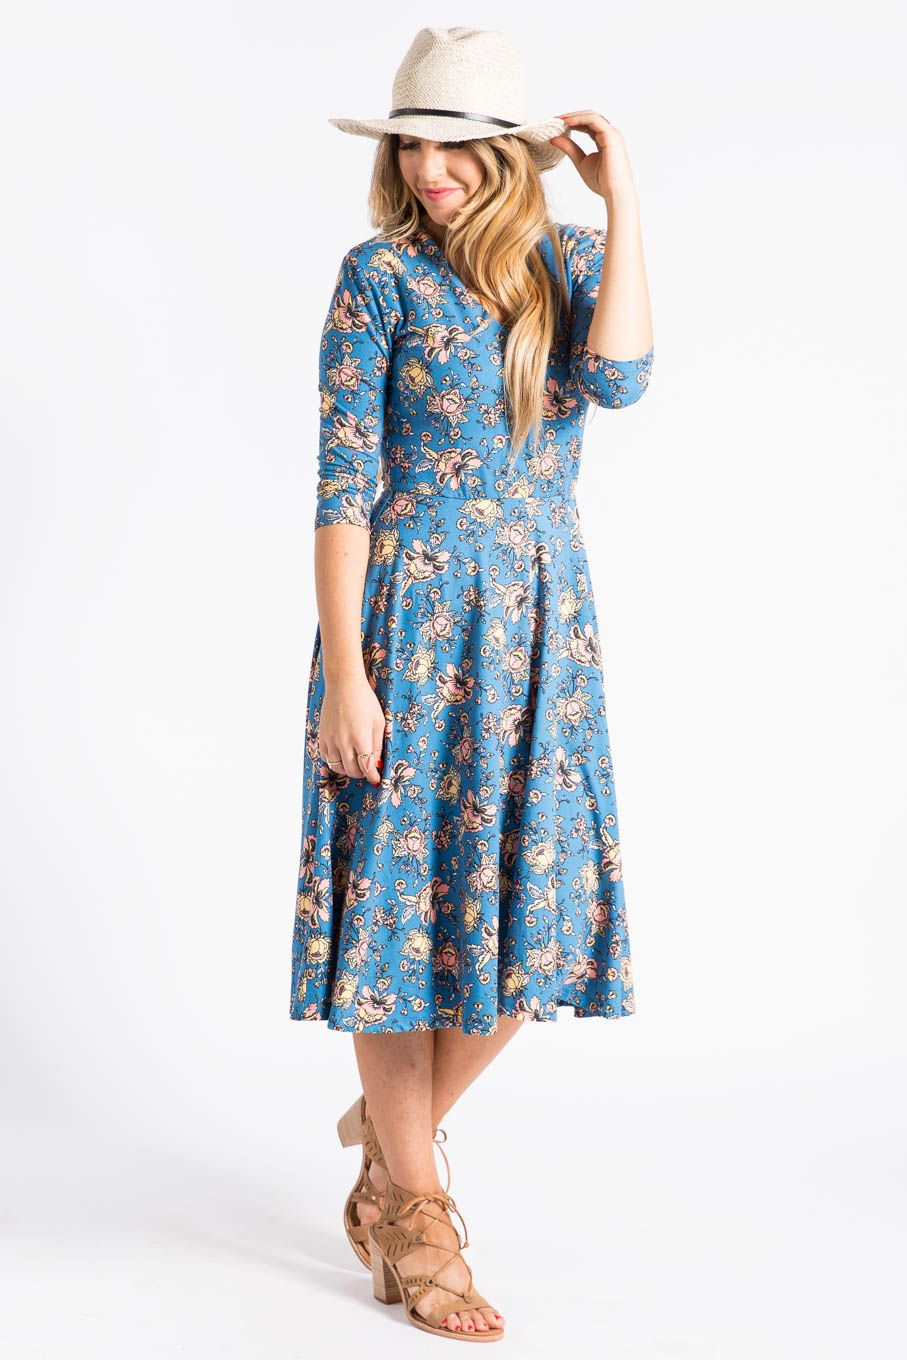 Cute Curie Dress with pockets. Falls just below knee, 3/4 sleeve, v ...